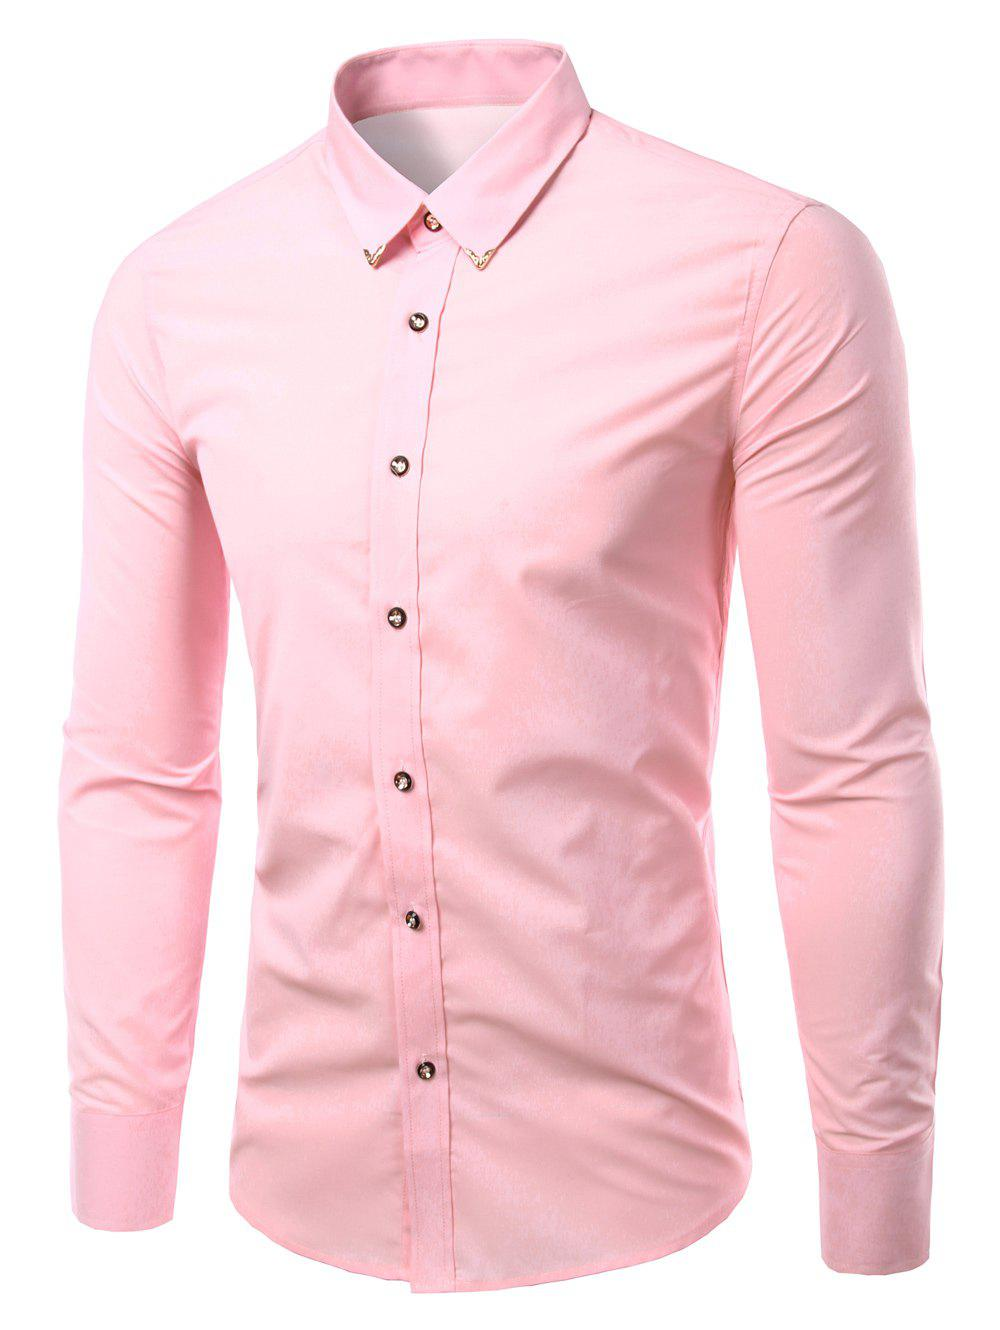 Men's Solid Color Metallic Turn-Down Callor Long Sleeves Shirts - PINK M